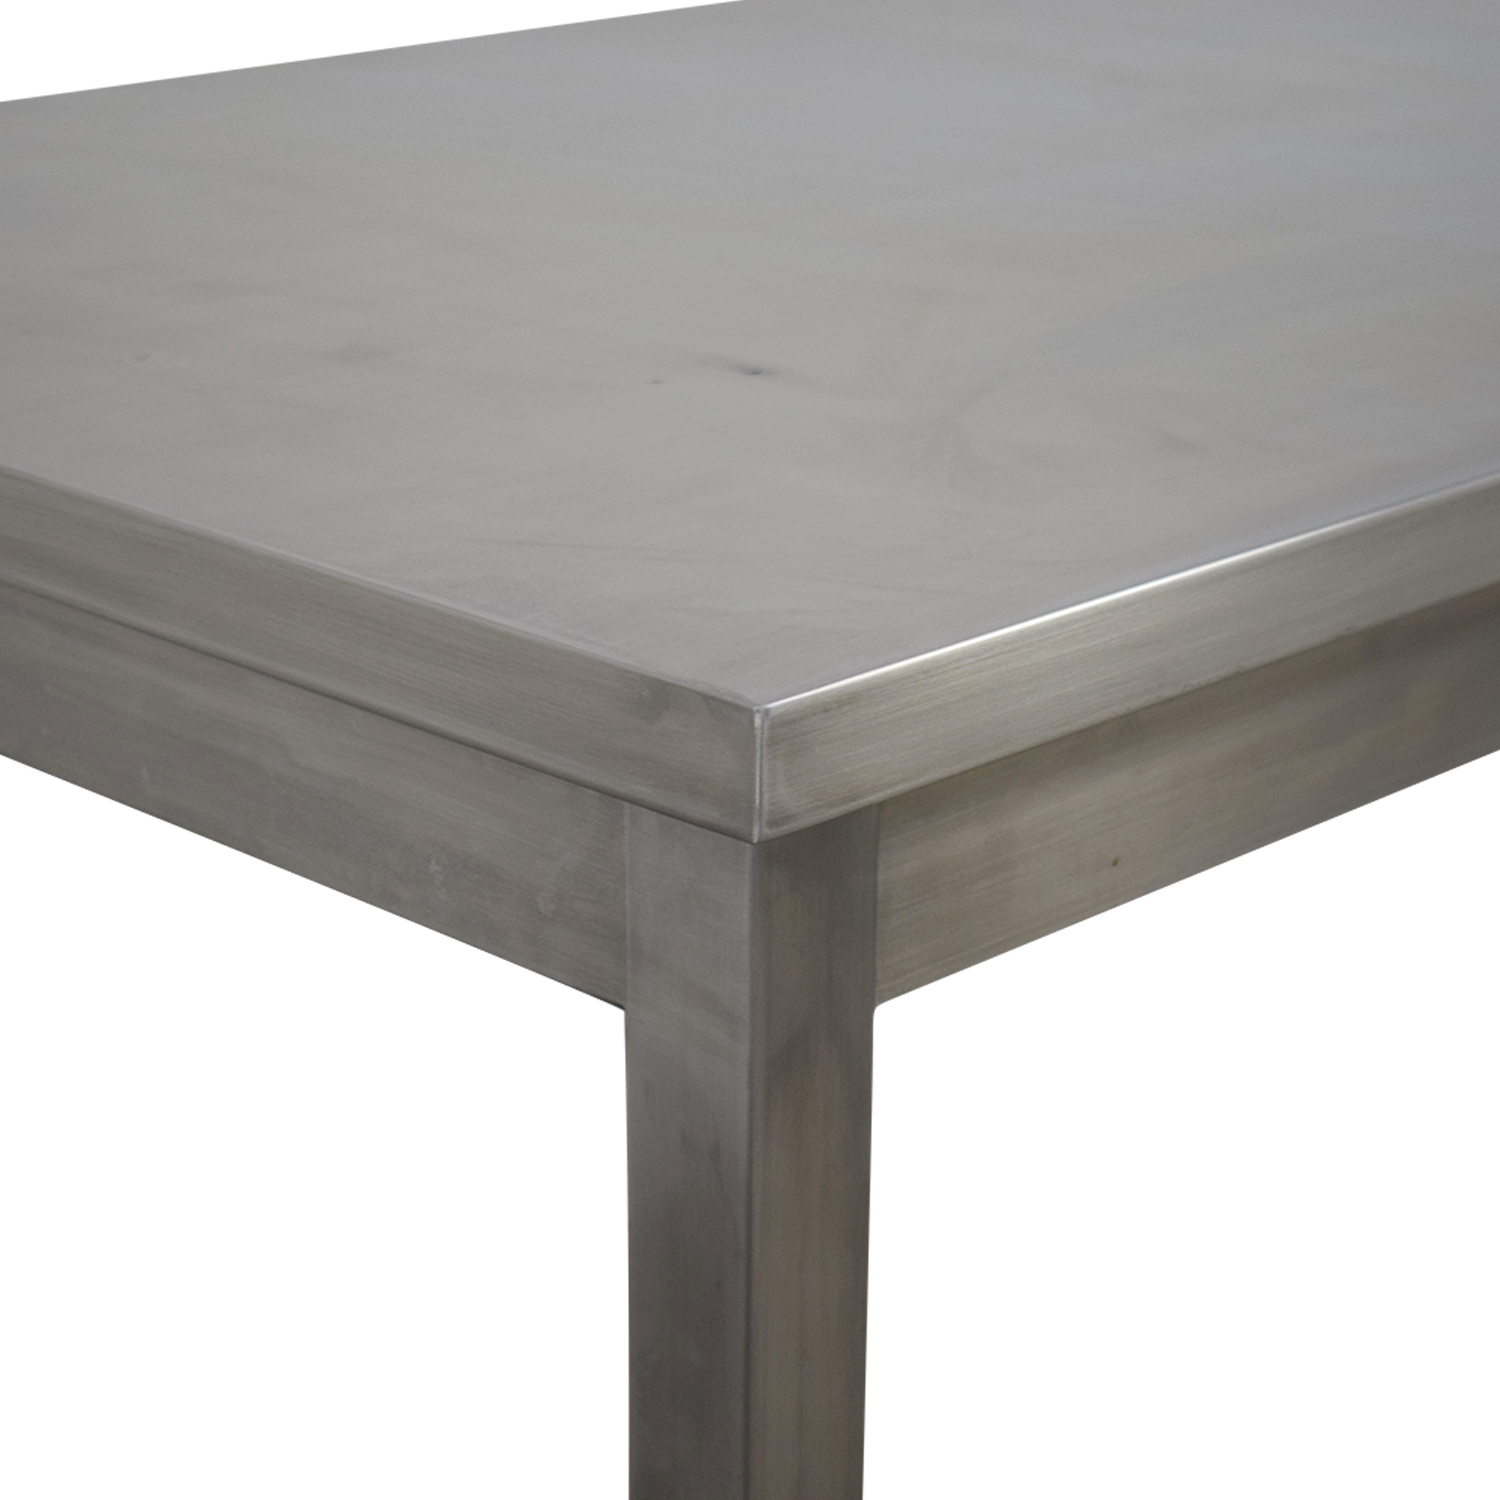 Bowery Kitchen Bowery Kitchen Stainless Steel High Top Table on sale